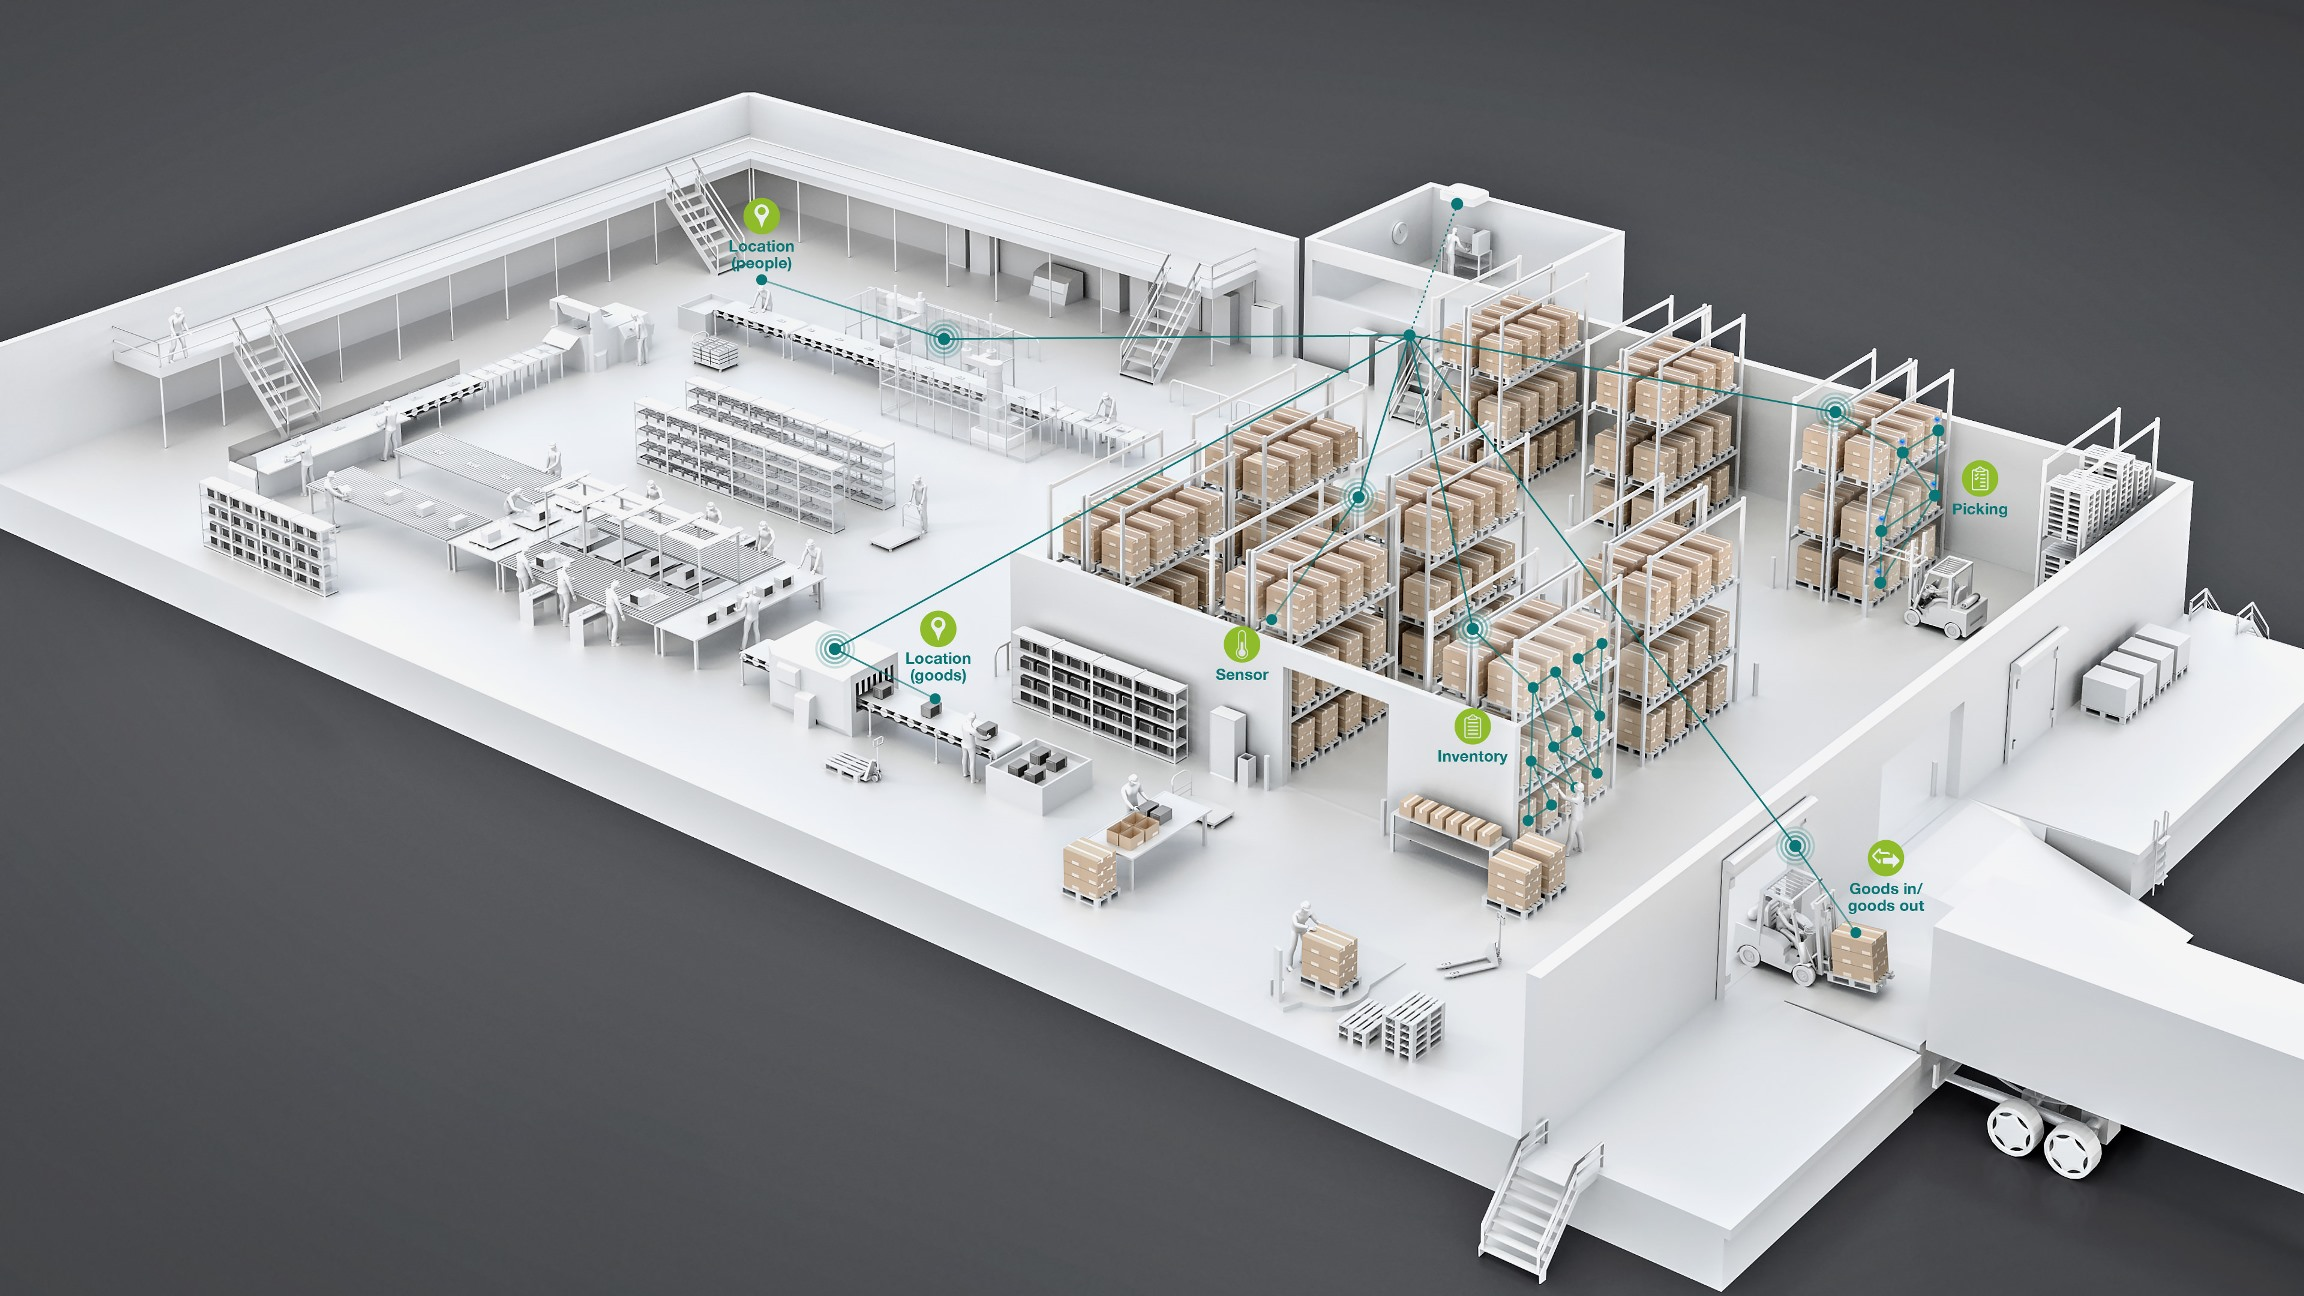 Flexible connectivity drives high availability and low cost for IoT communications